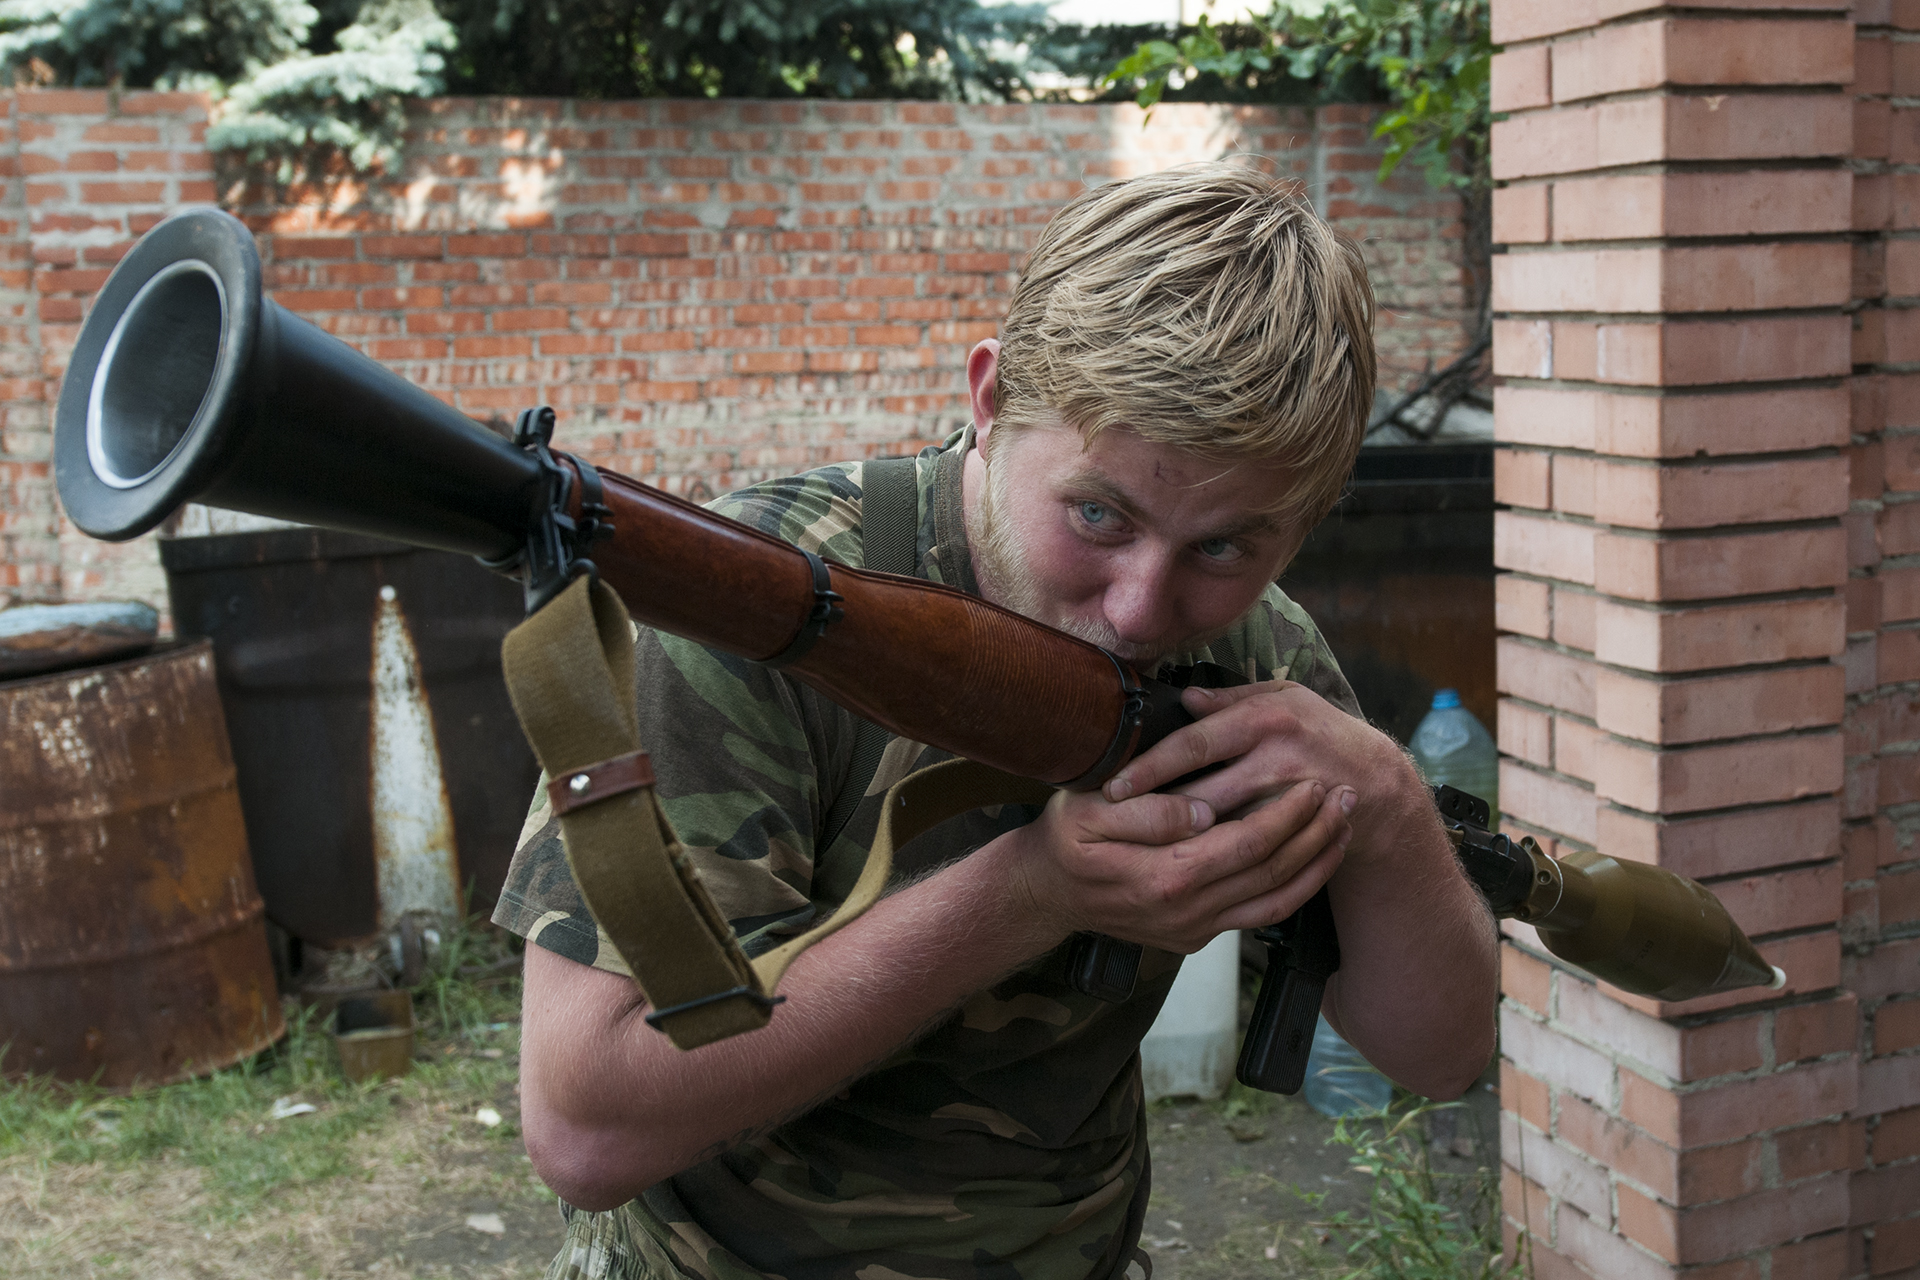 """Blondinki"", 19, kissing his RPG launcher and calling it he's girlfriend as he mess around with his comrades"